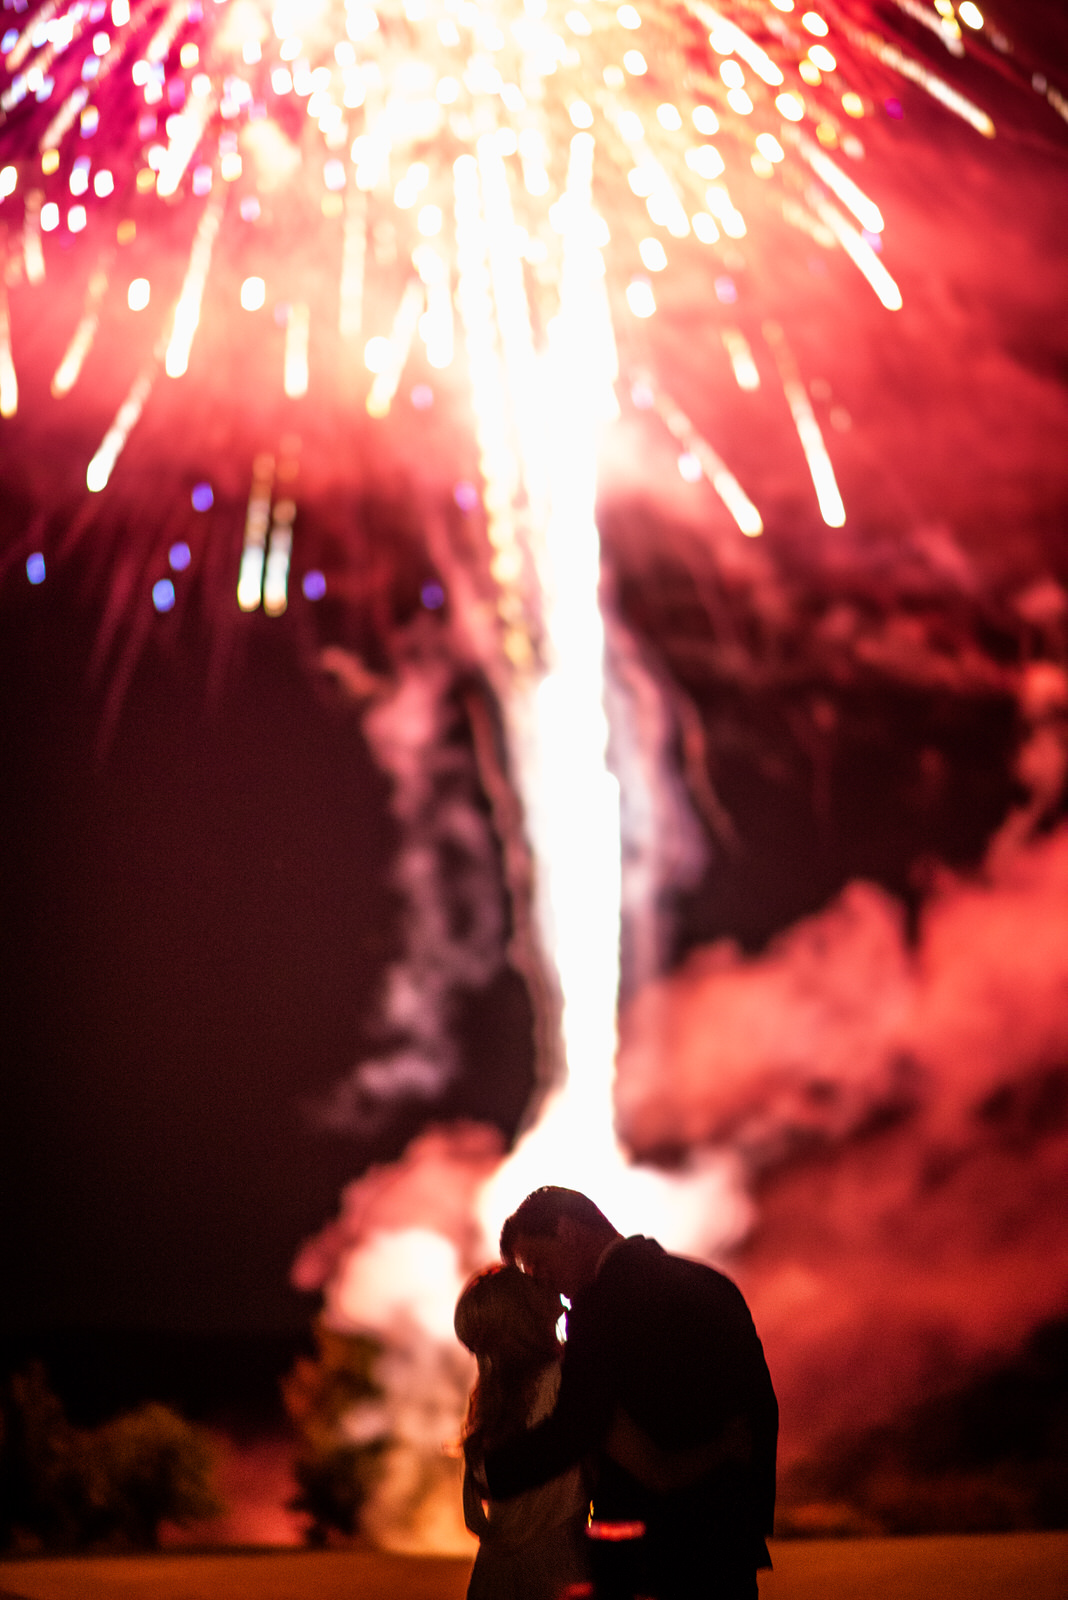 Bride and groom kissing under fireworks at wedding